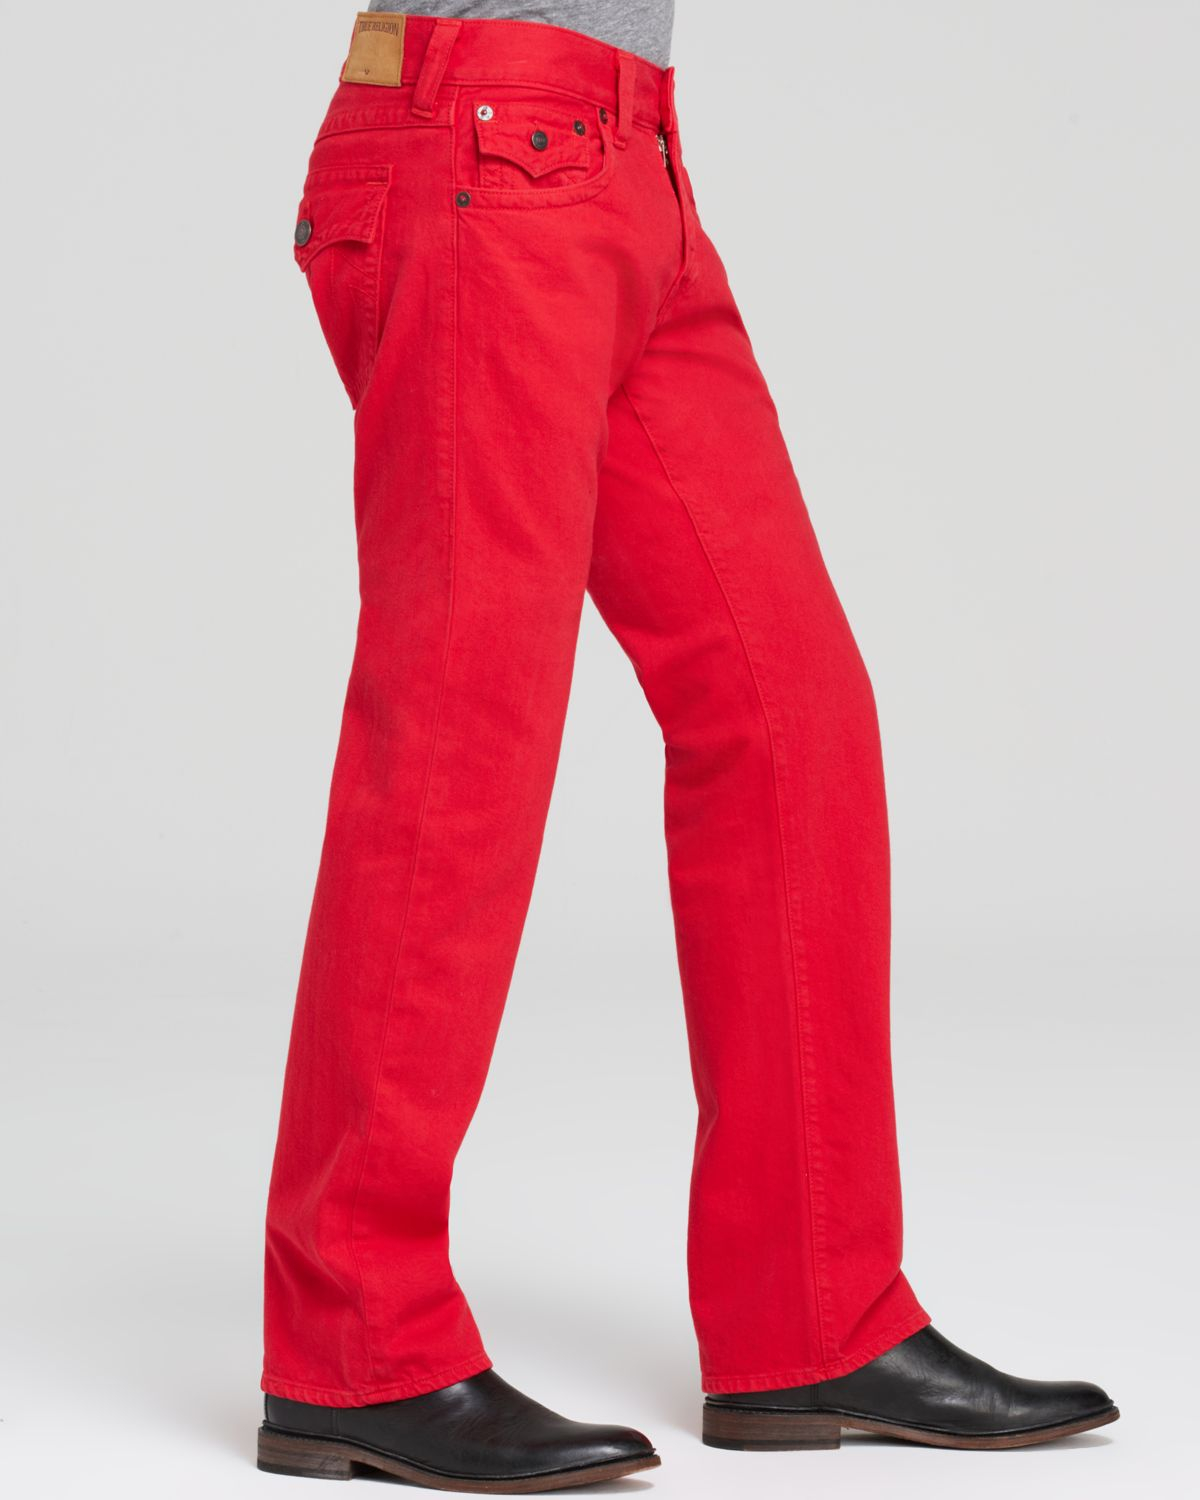 True religion Jeans - Ricky Straight Fit In True Red in Red for ...